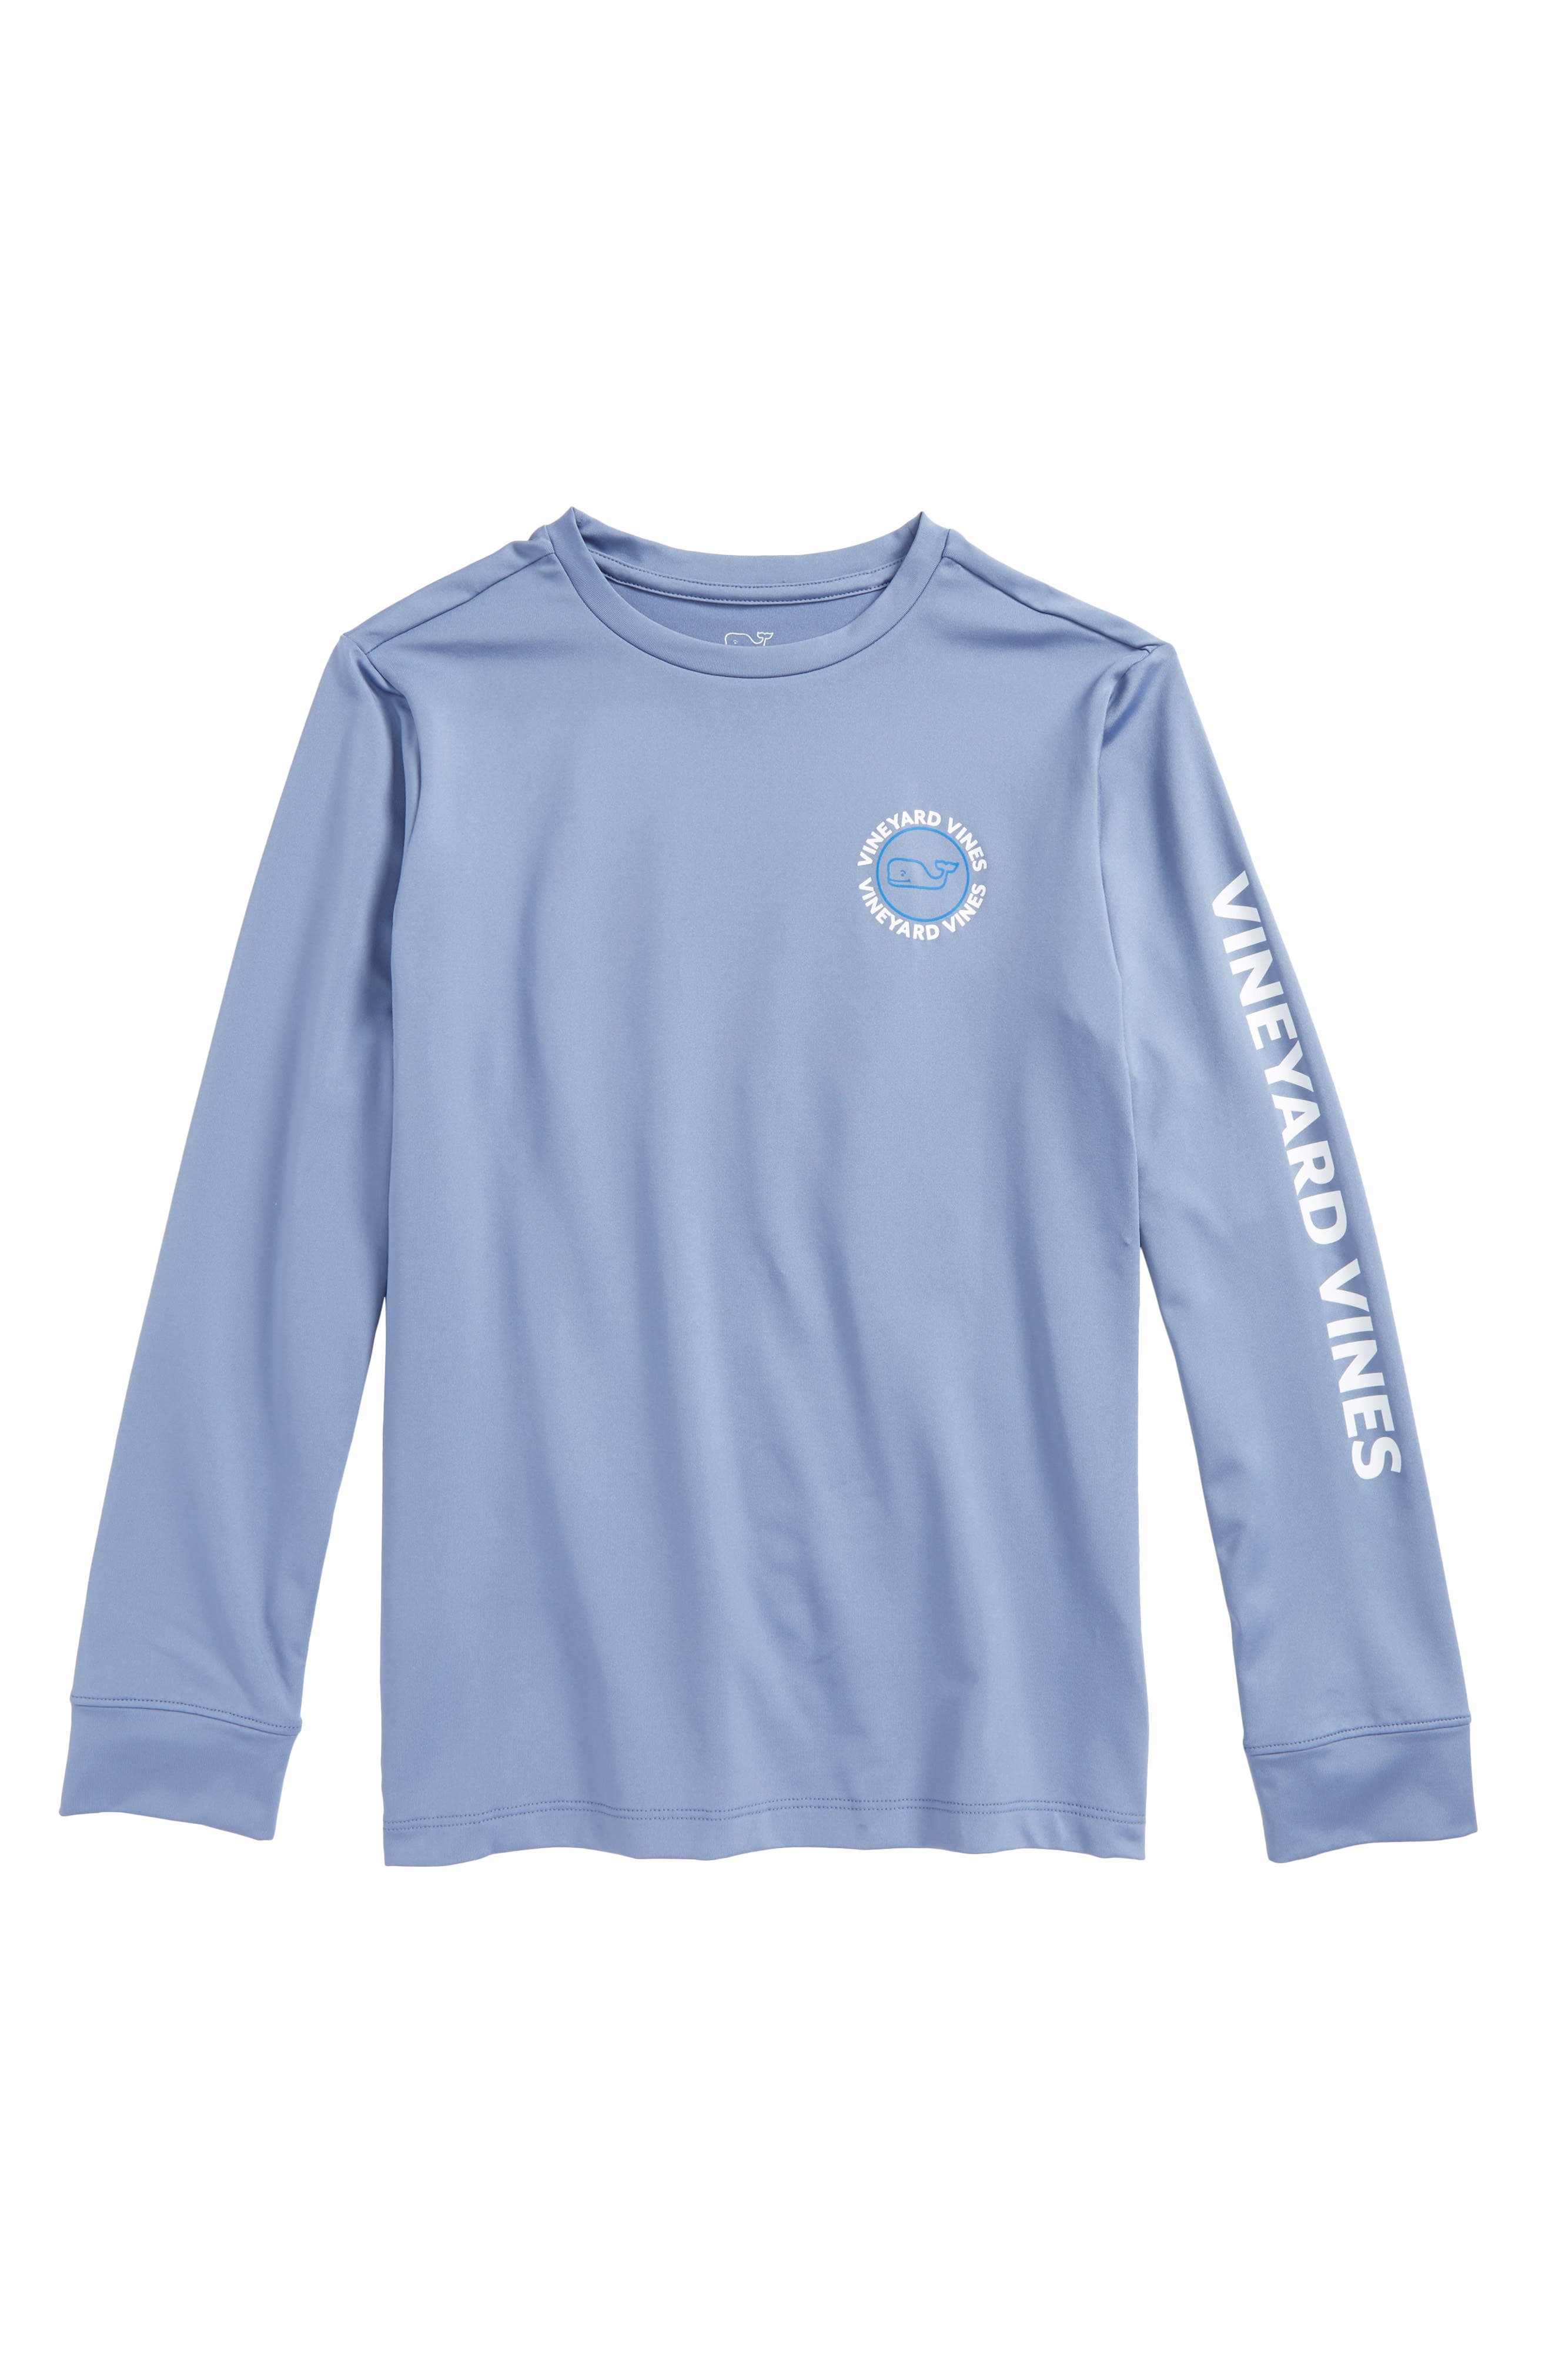 Whale Dot Performance T-Shirt,                         Main,                         color, 400